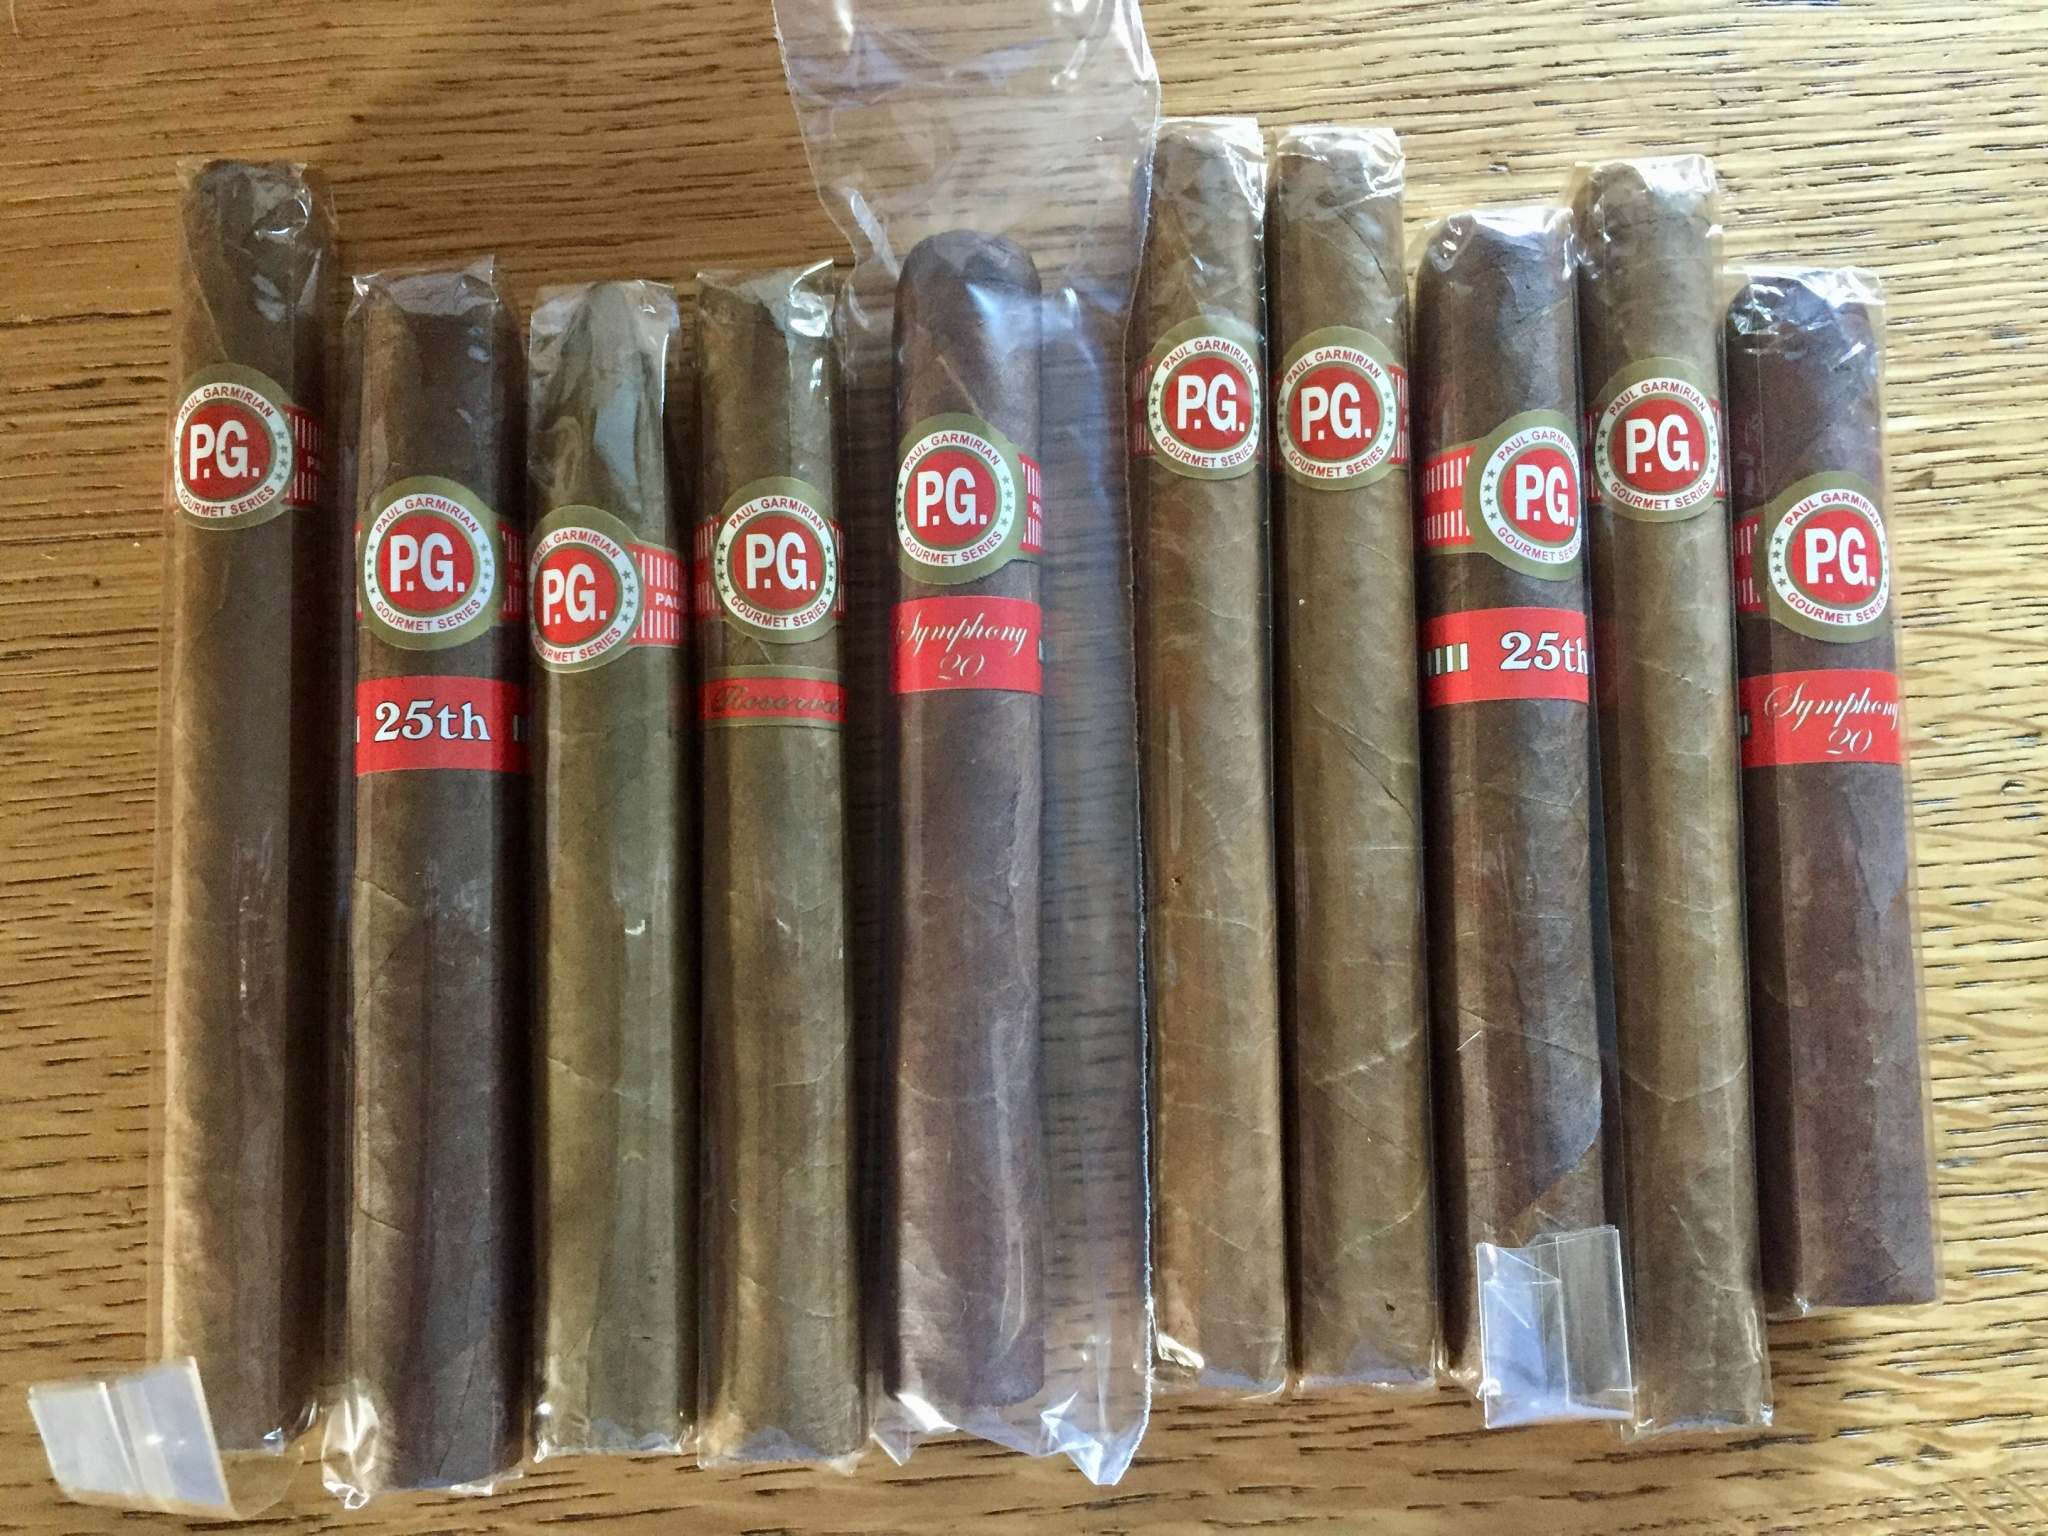 What's Your Latest Non-Cuban Purchase? II-00ed5fd9-6f3a-4e2d-a38a-71bbe00afb1a.jpg